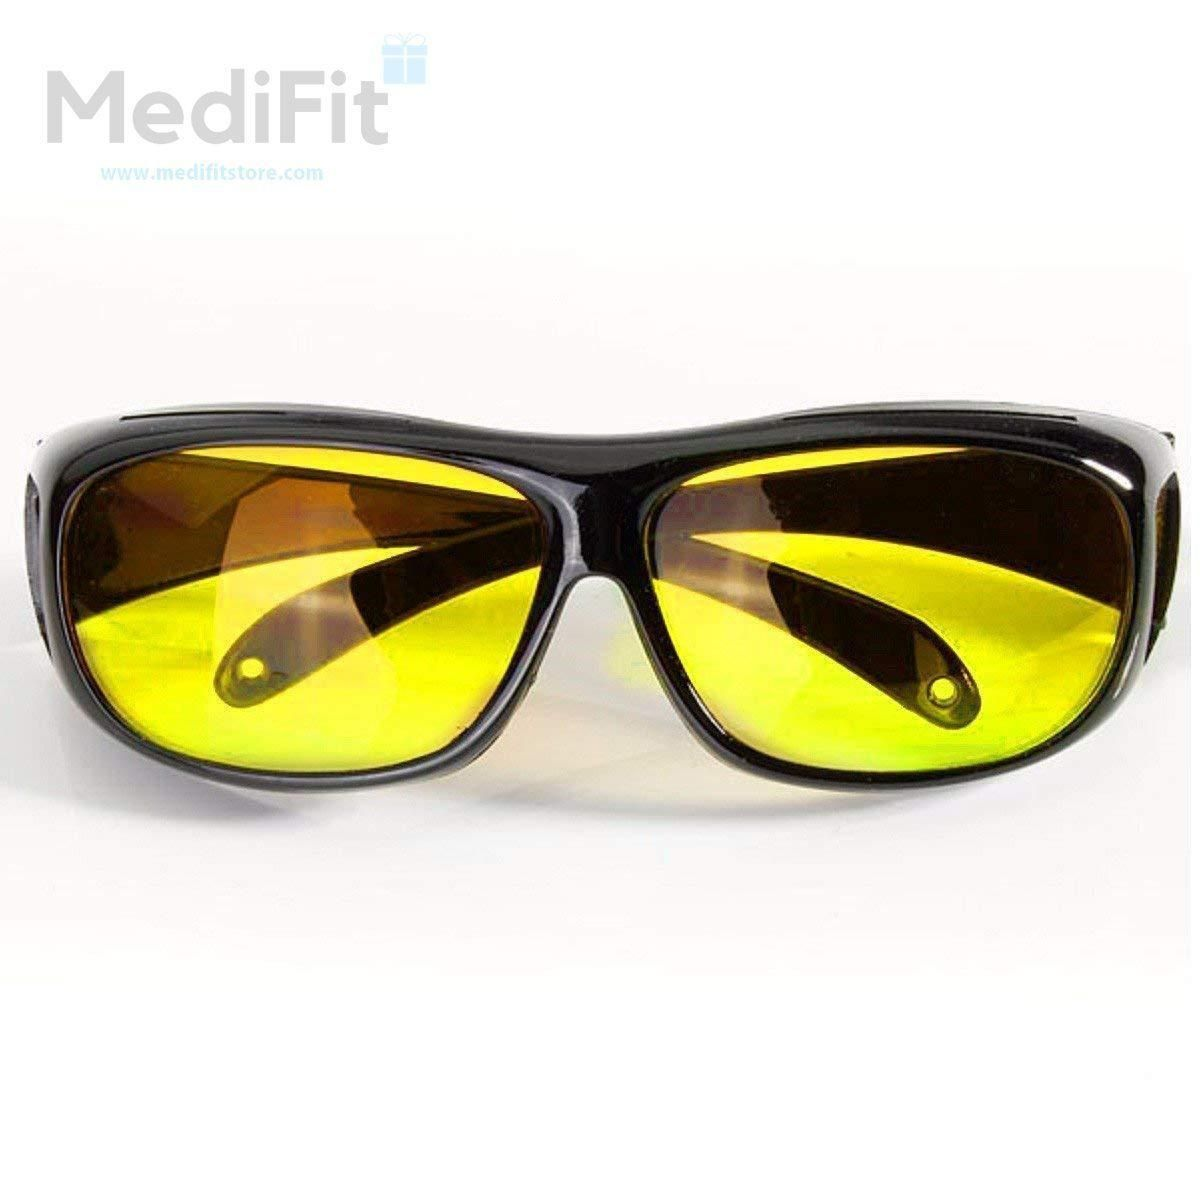 b9a32c14 Optica™ Night Vision HD Driving Glasses - MediFit | Online Purchase ...